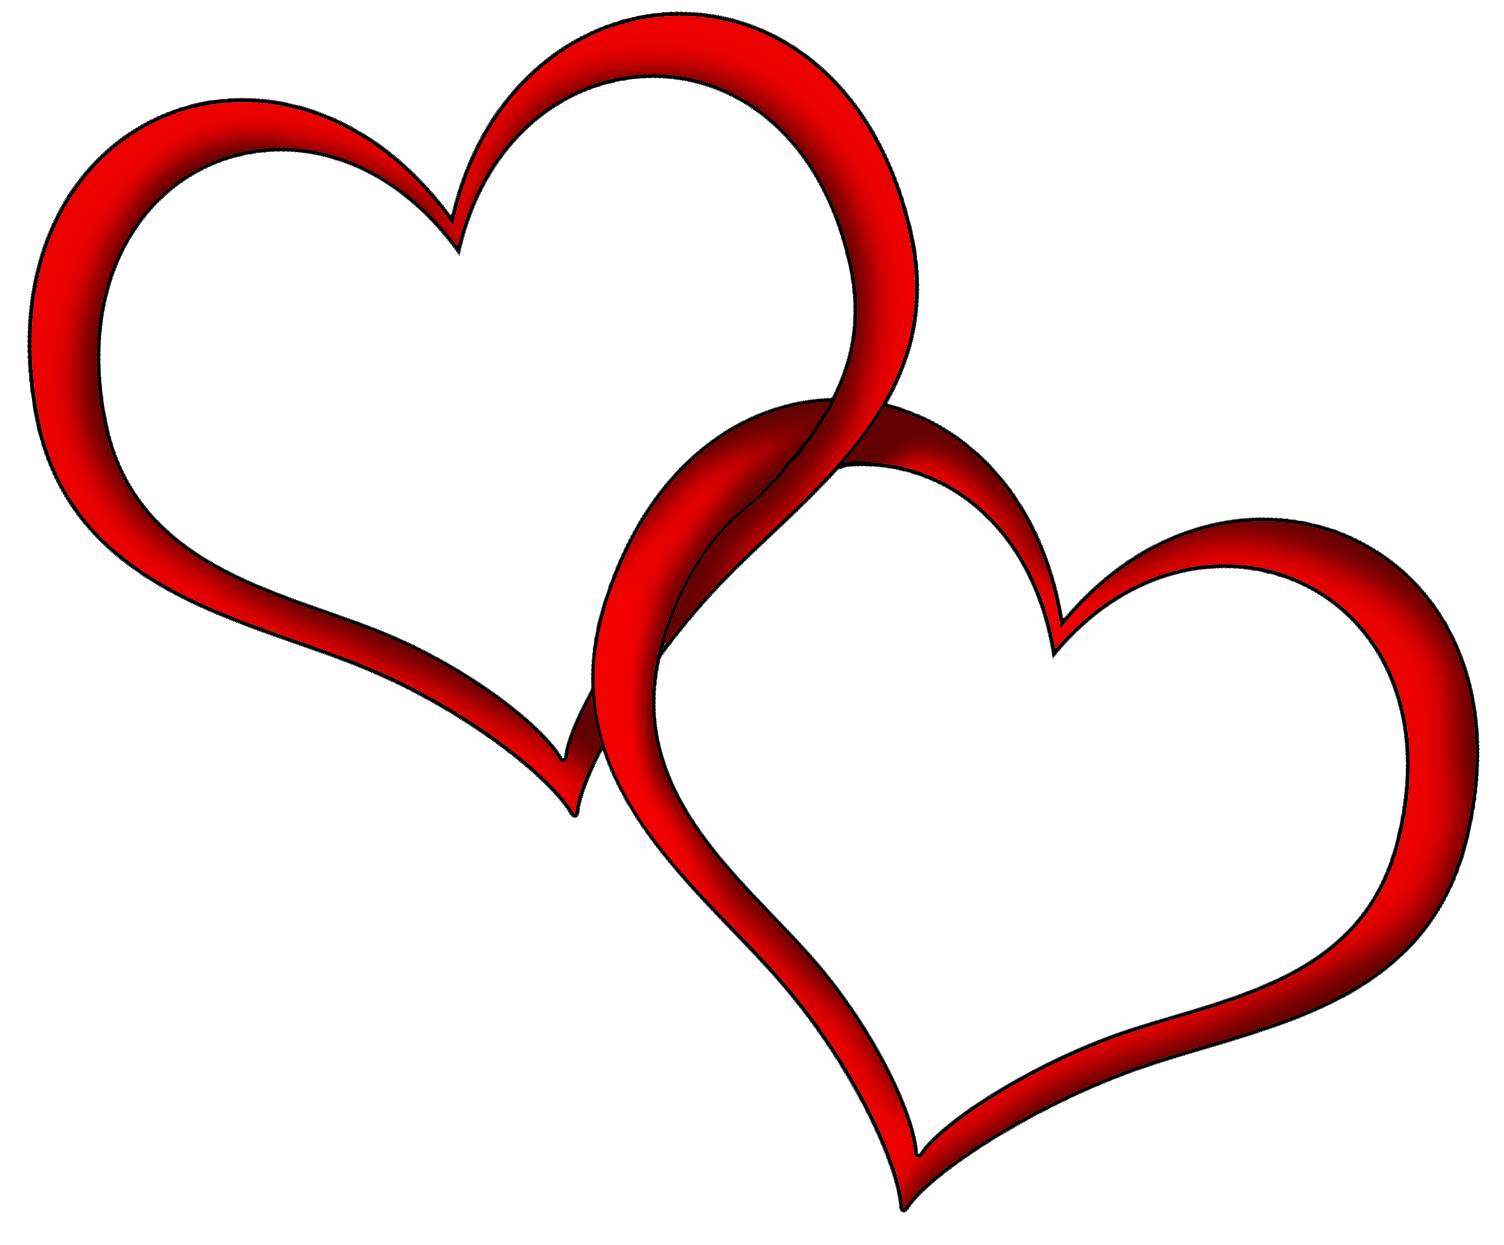 ... Red Heart Clip Art - clipartall